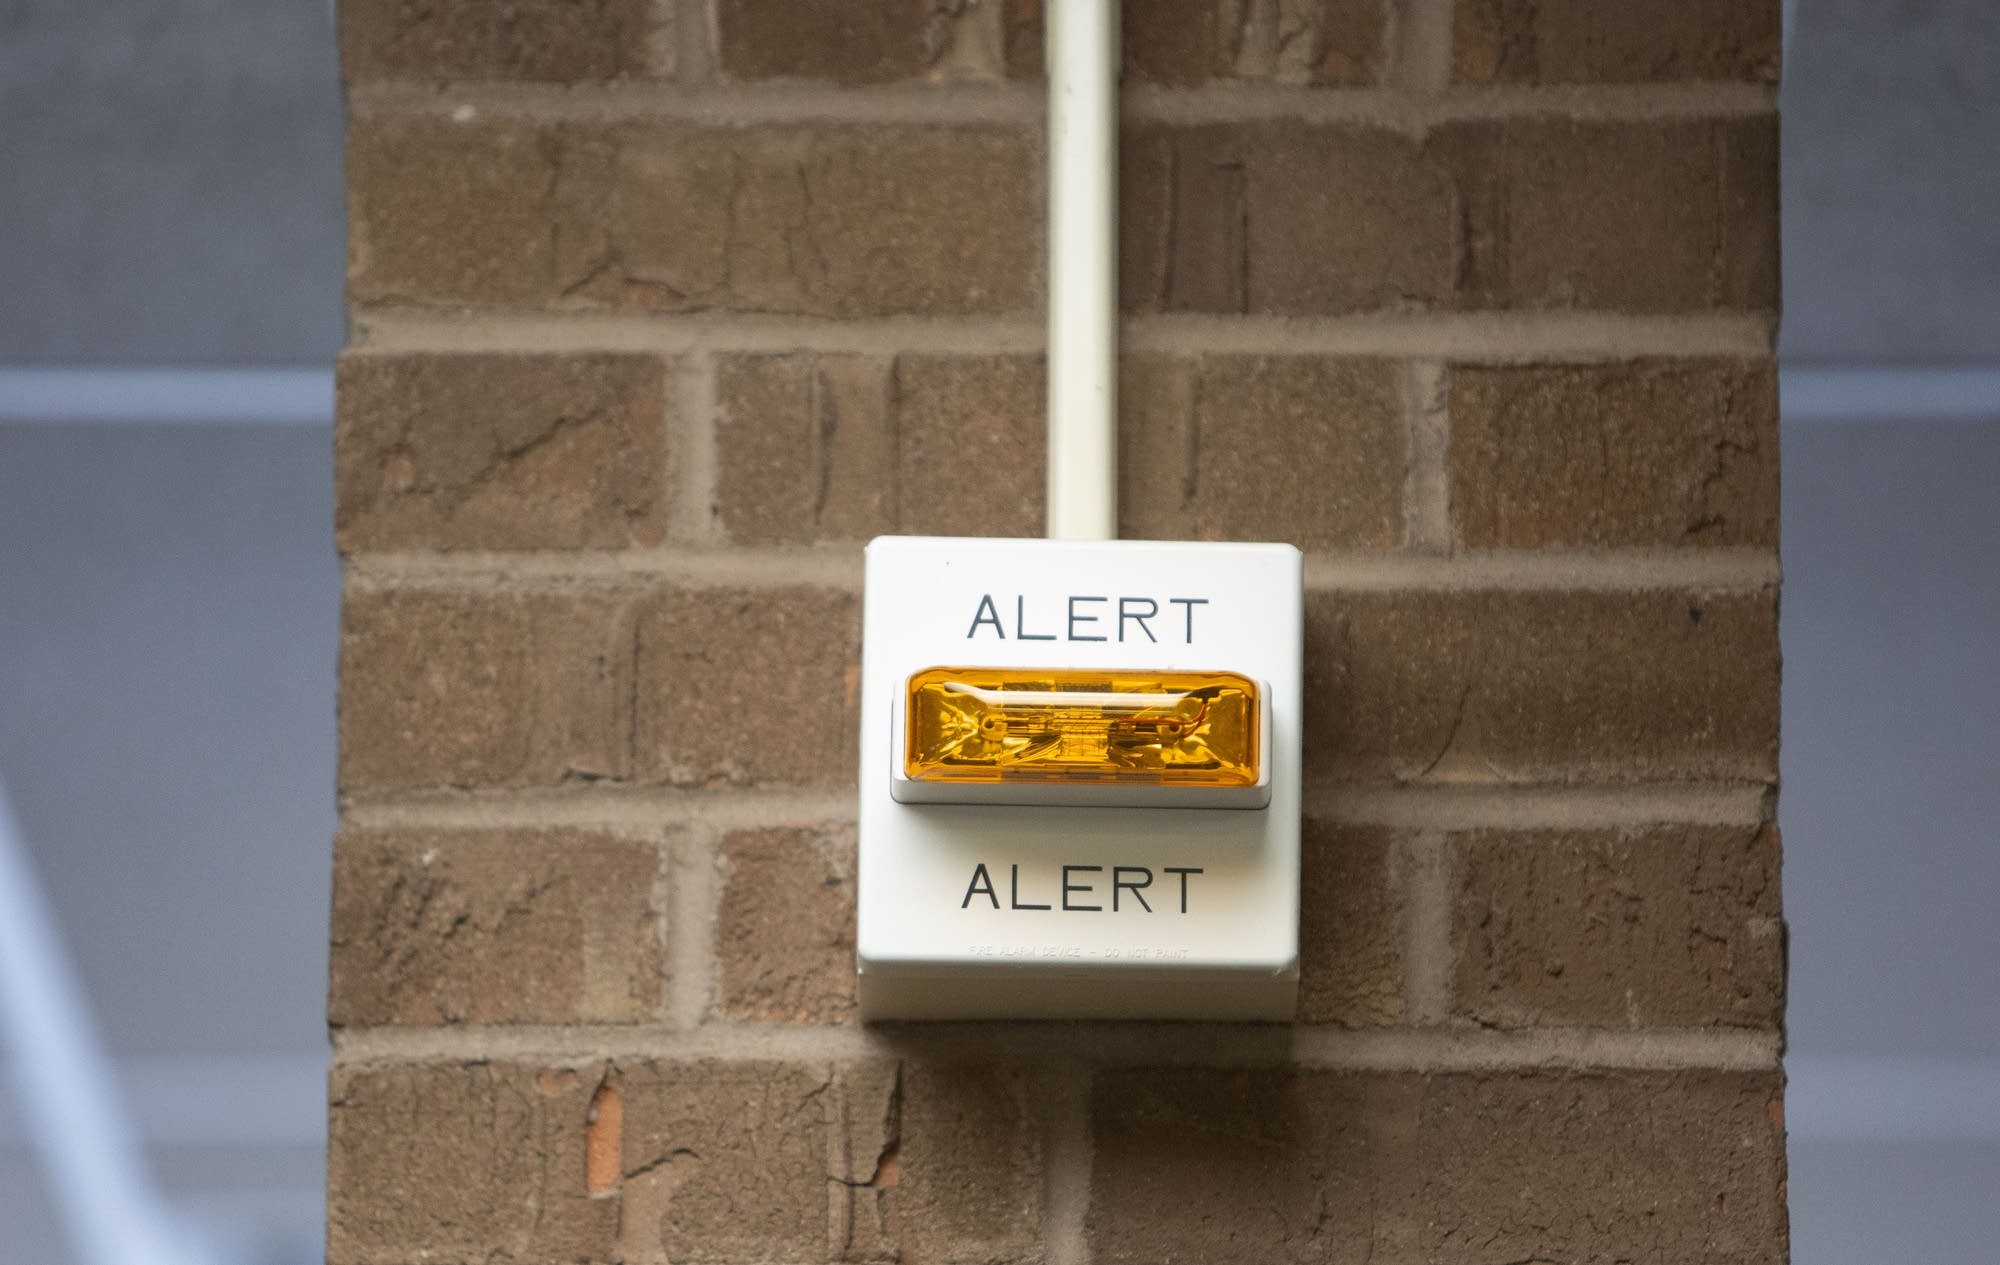 A security alert is used in high occupancy areas to provide warnings.